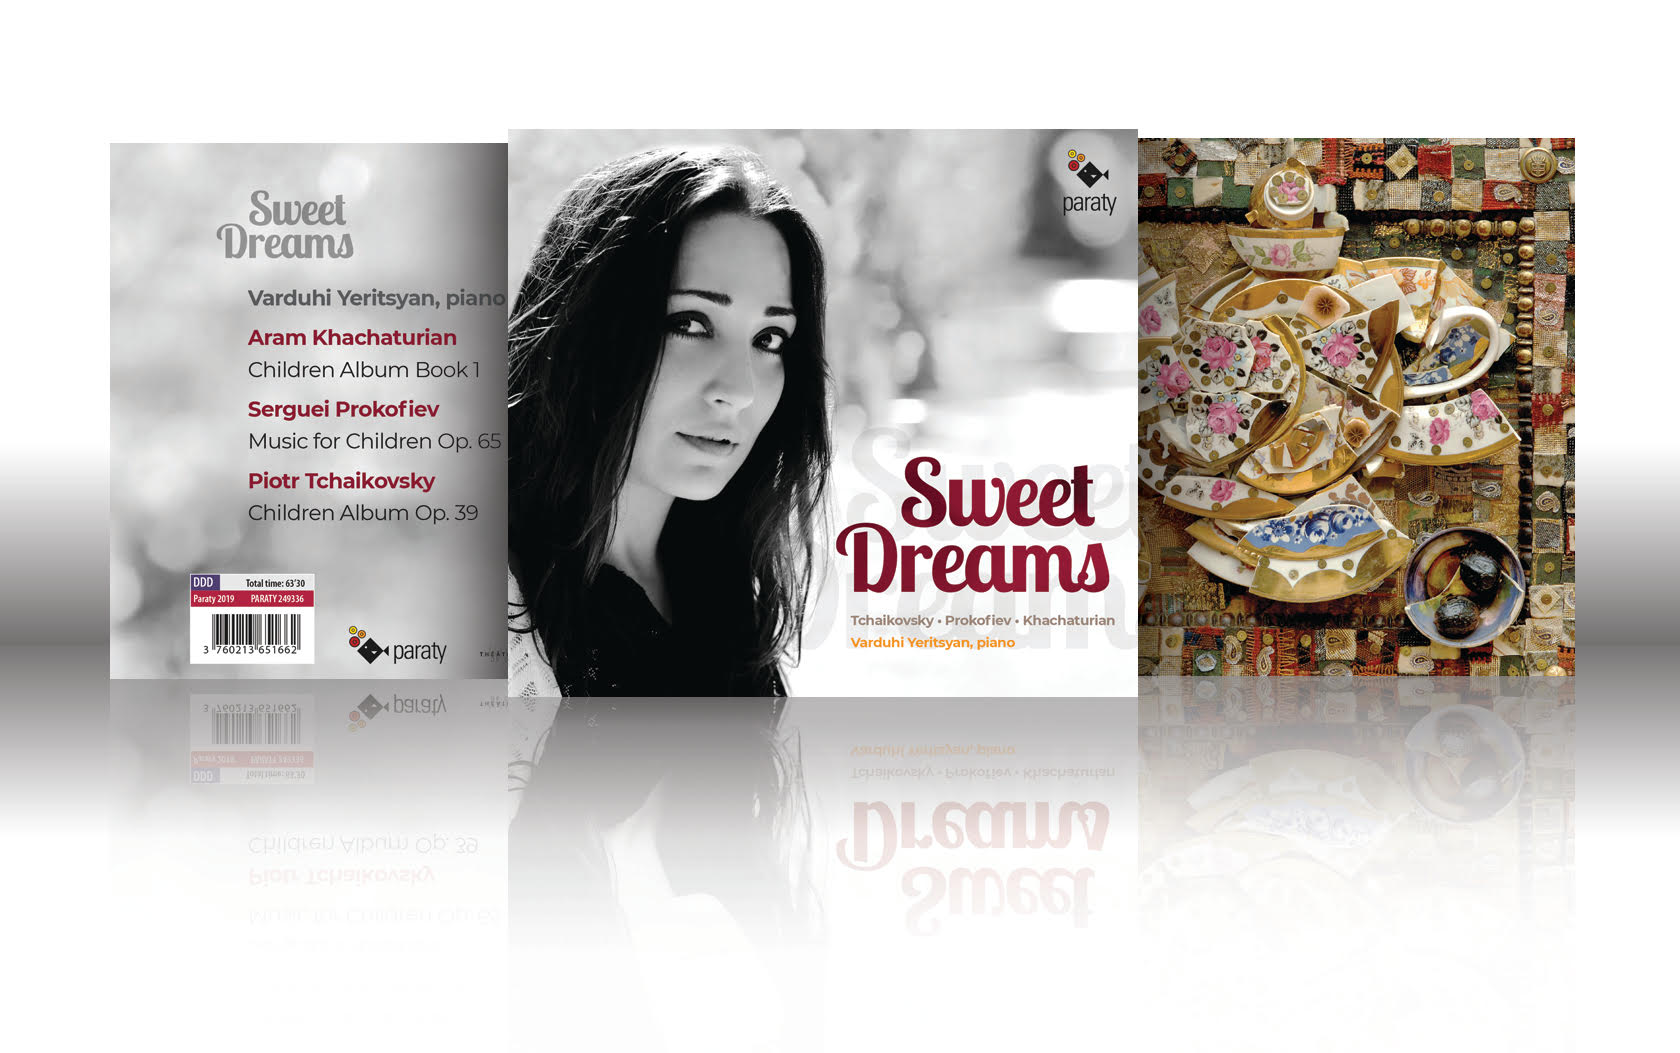 Sweet Dreams|France Musique